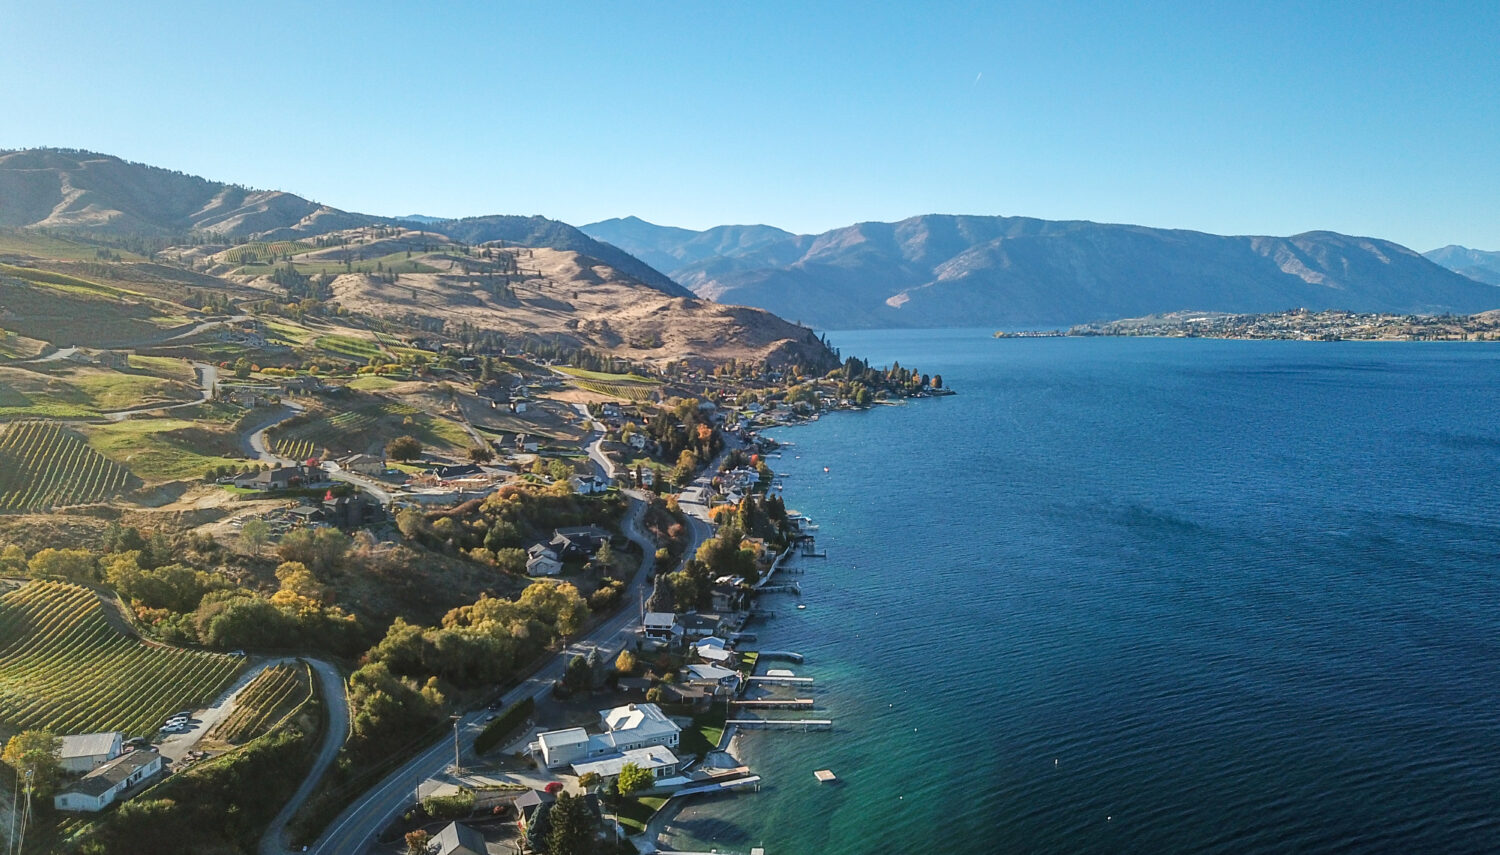 A blue-green lake on the right and shore with buildings and docks on the left, with rolling hills and blue sky in the background